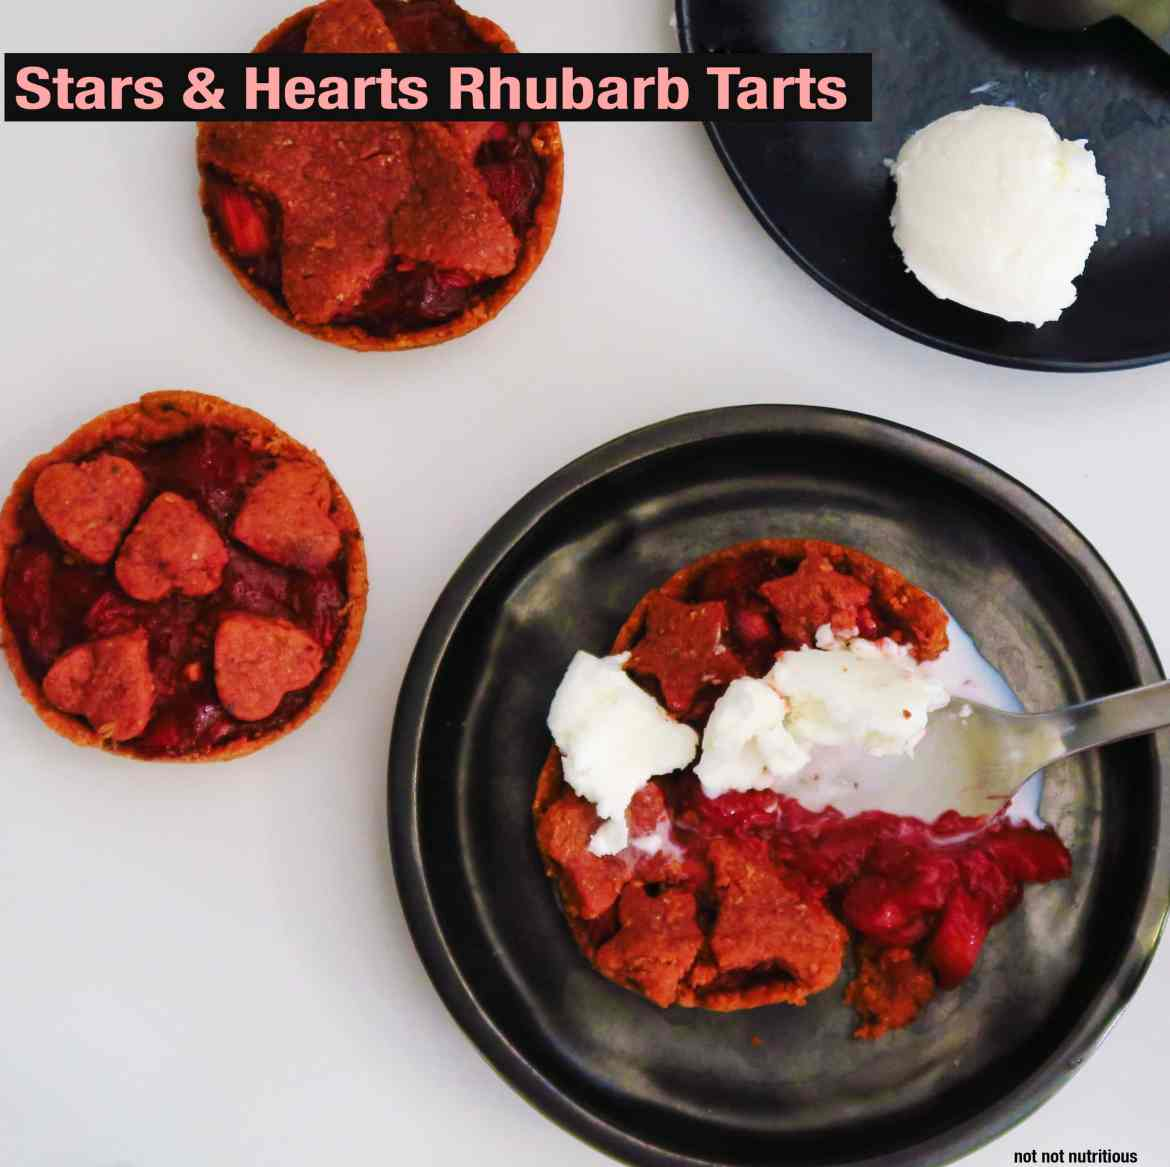 Rhubarb Tarts - Easily made either vegan or vegetarian